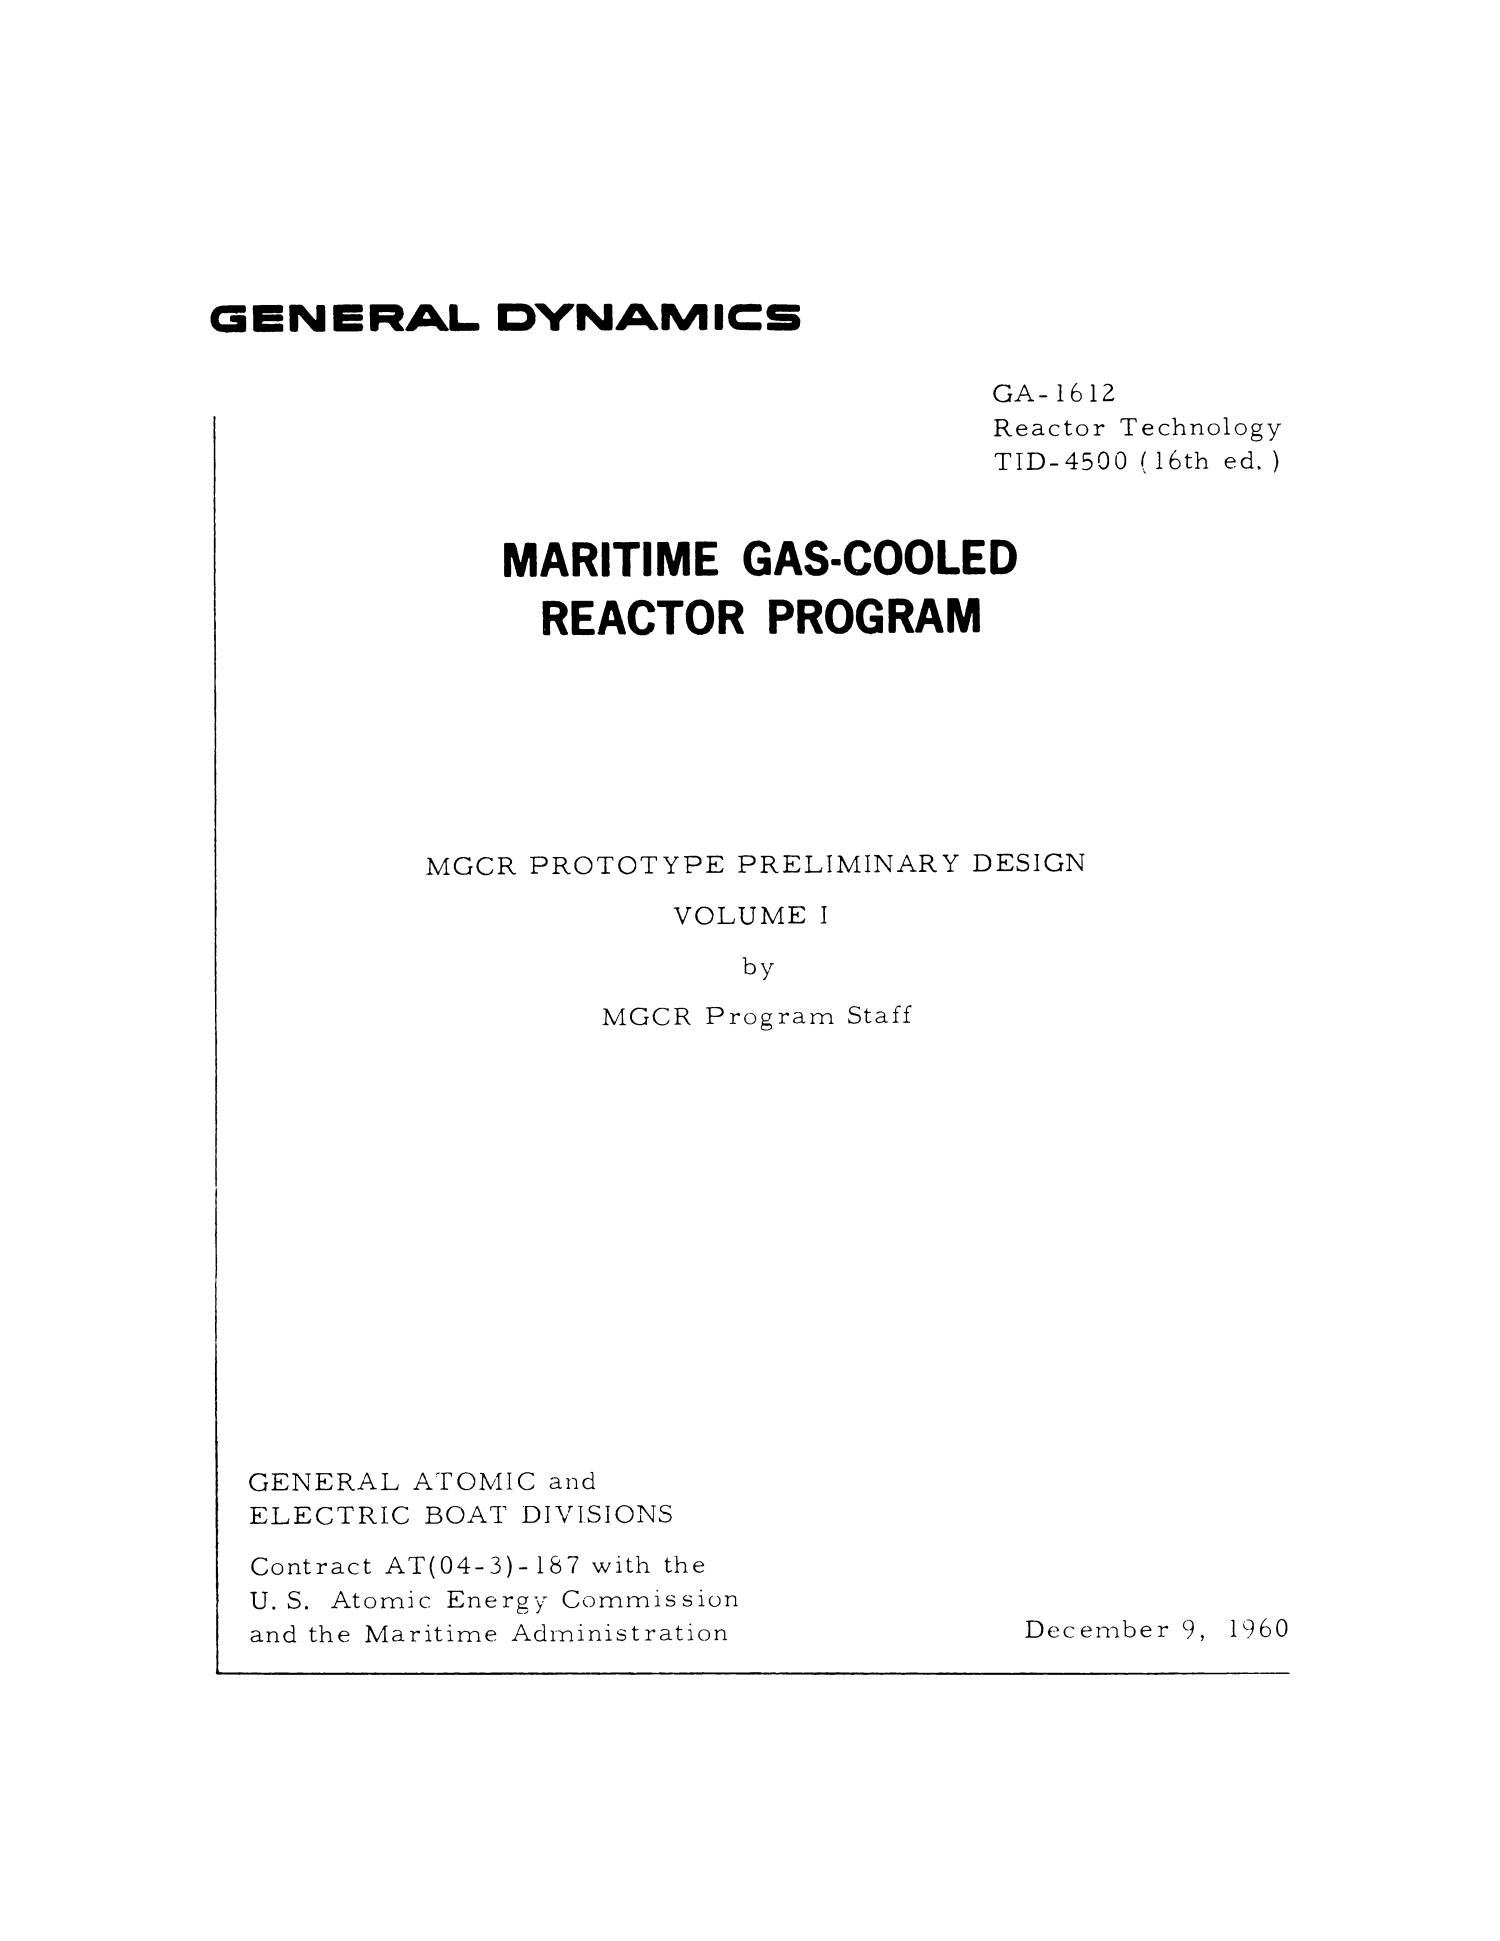 Maritime Gas-Cooled Reactor Program: MGCR Prototype Preliminary Design, Volume 1                                                                                                      Title Page